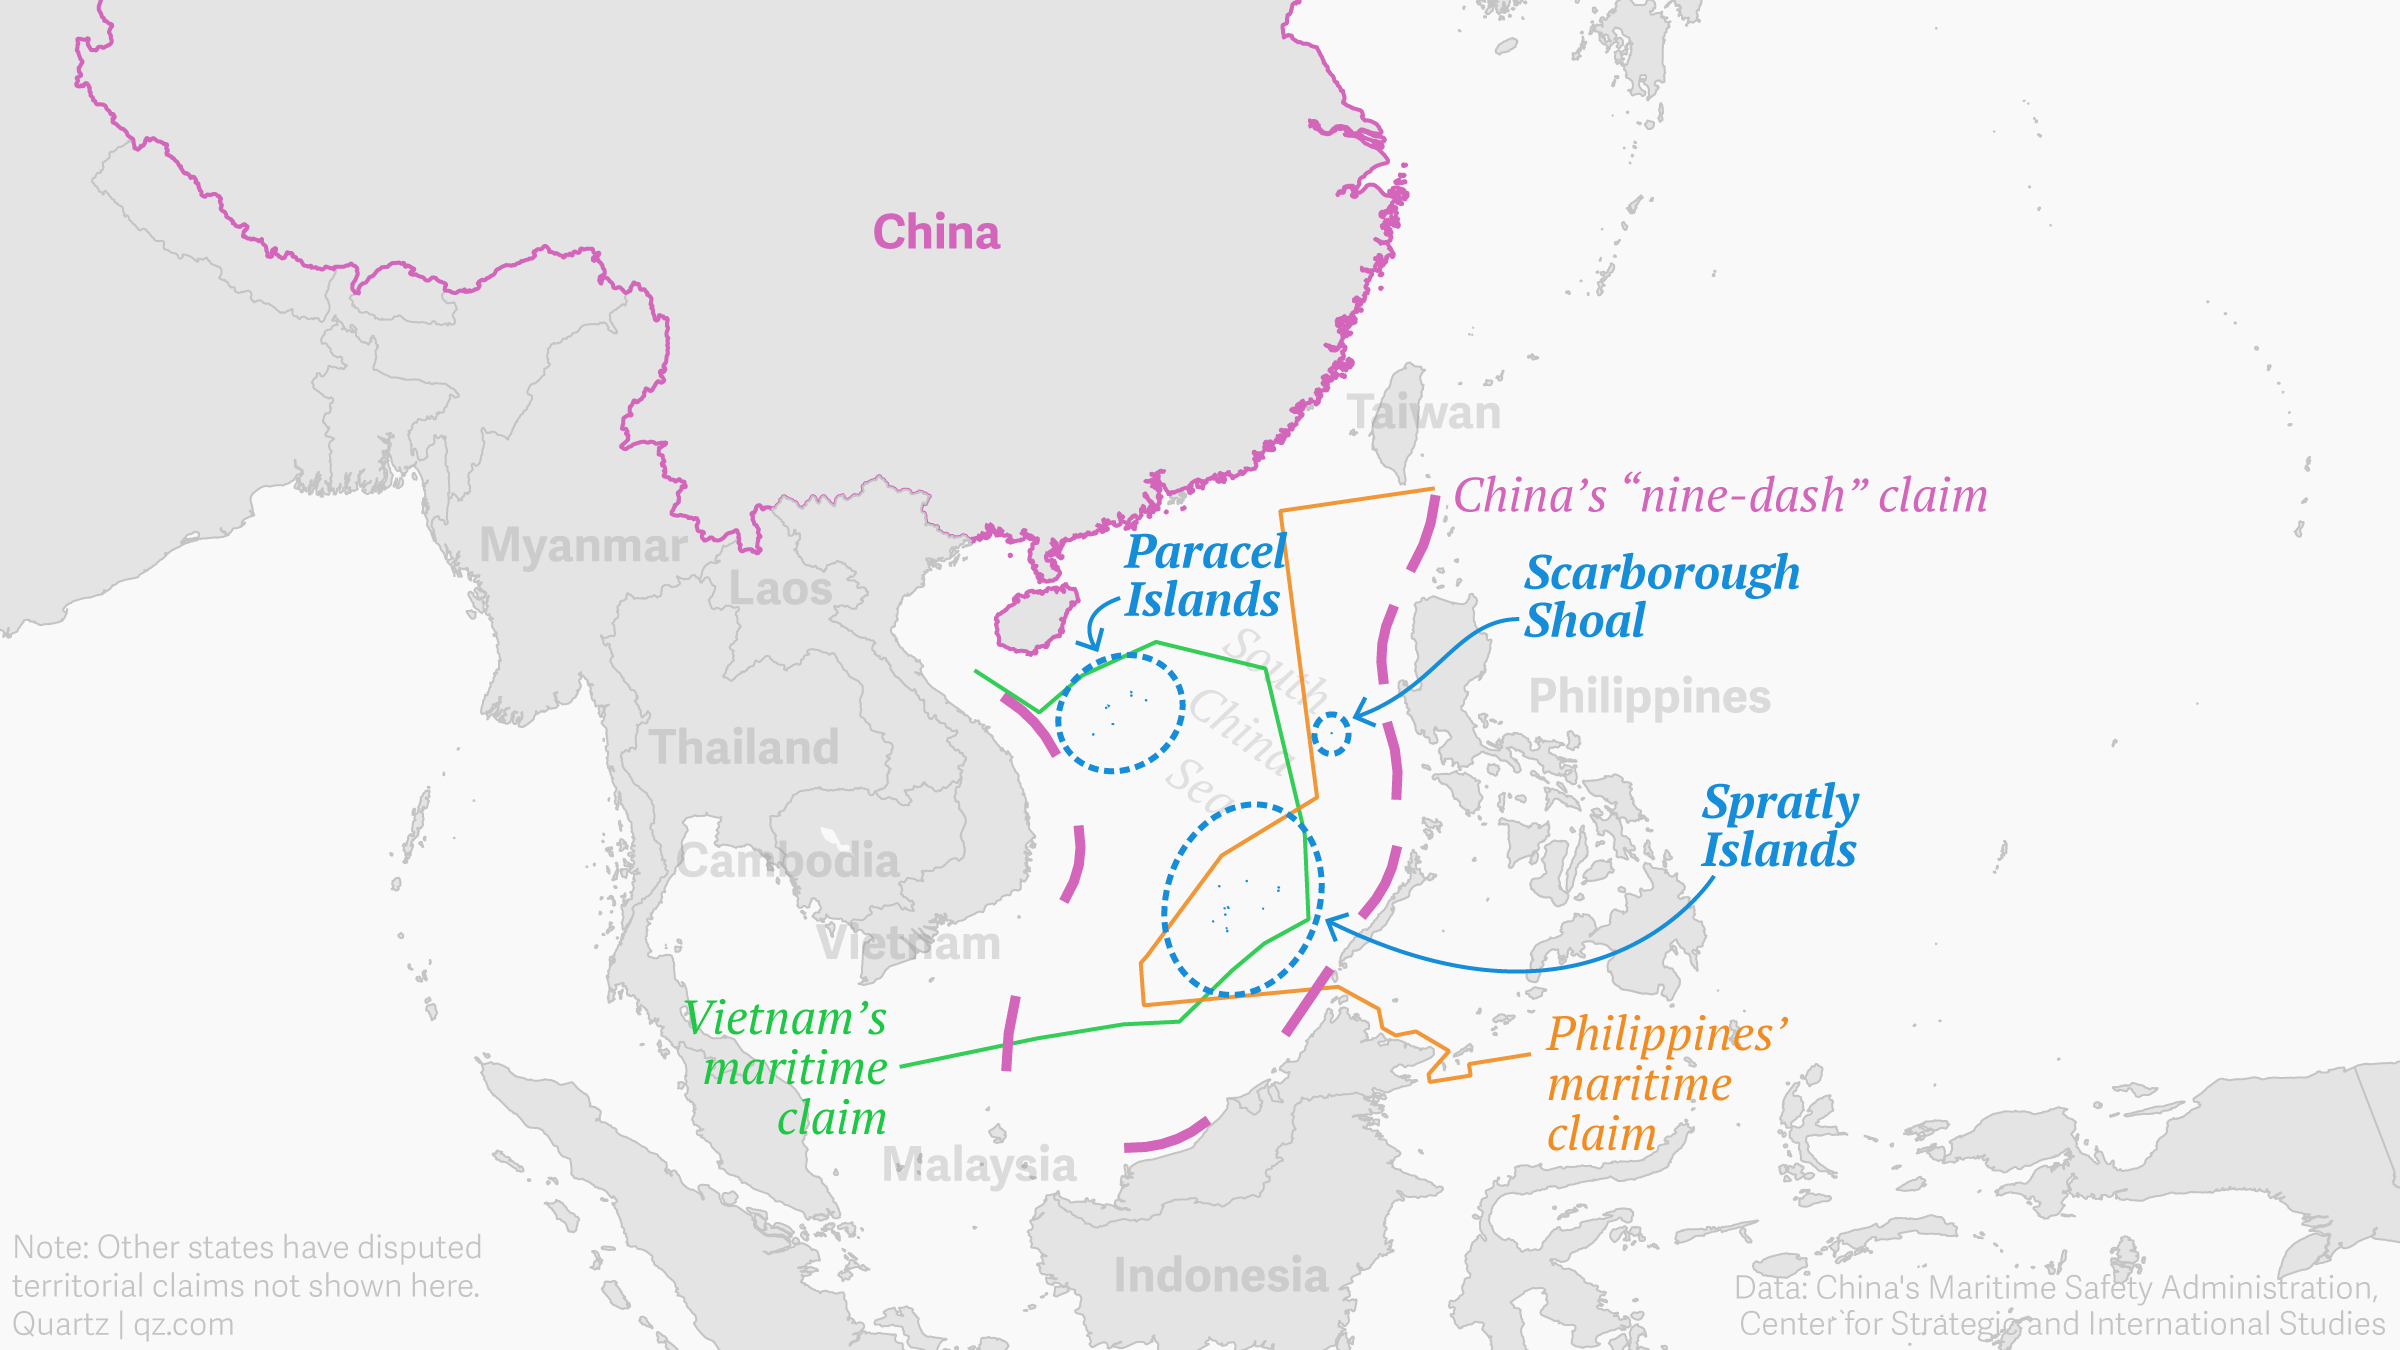 Map of China's nine-dash line showing the Spratly and Paracel islands and Scarborough Shoal